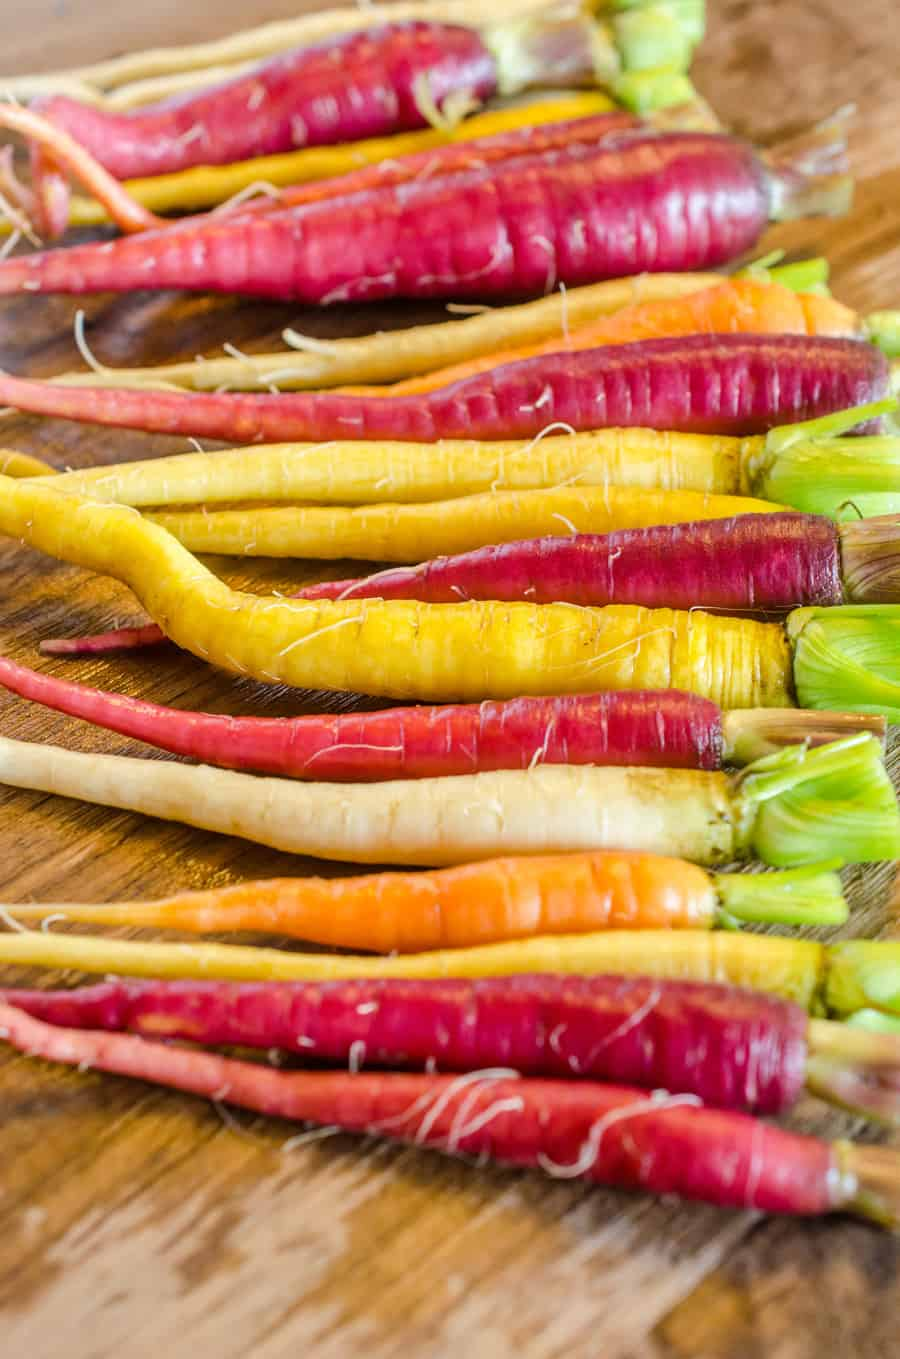 colorful carrots on a table